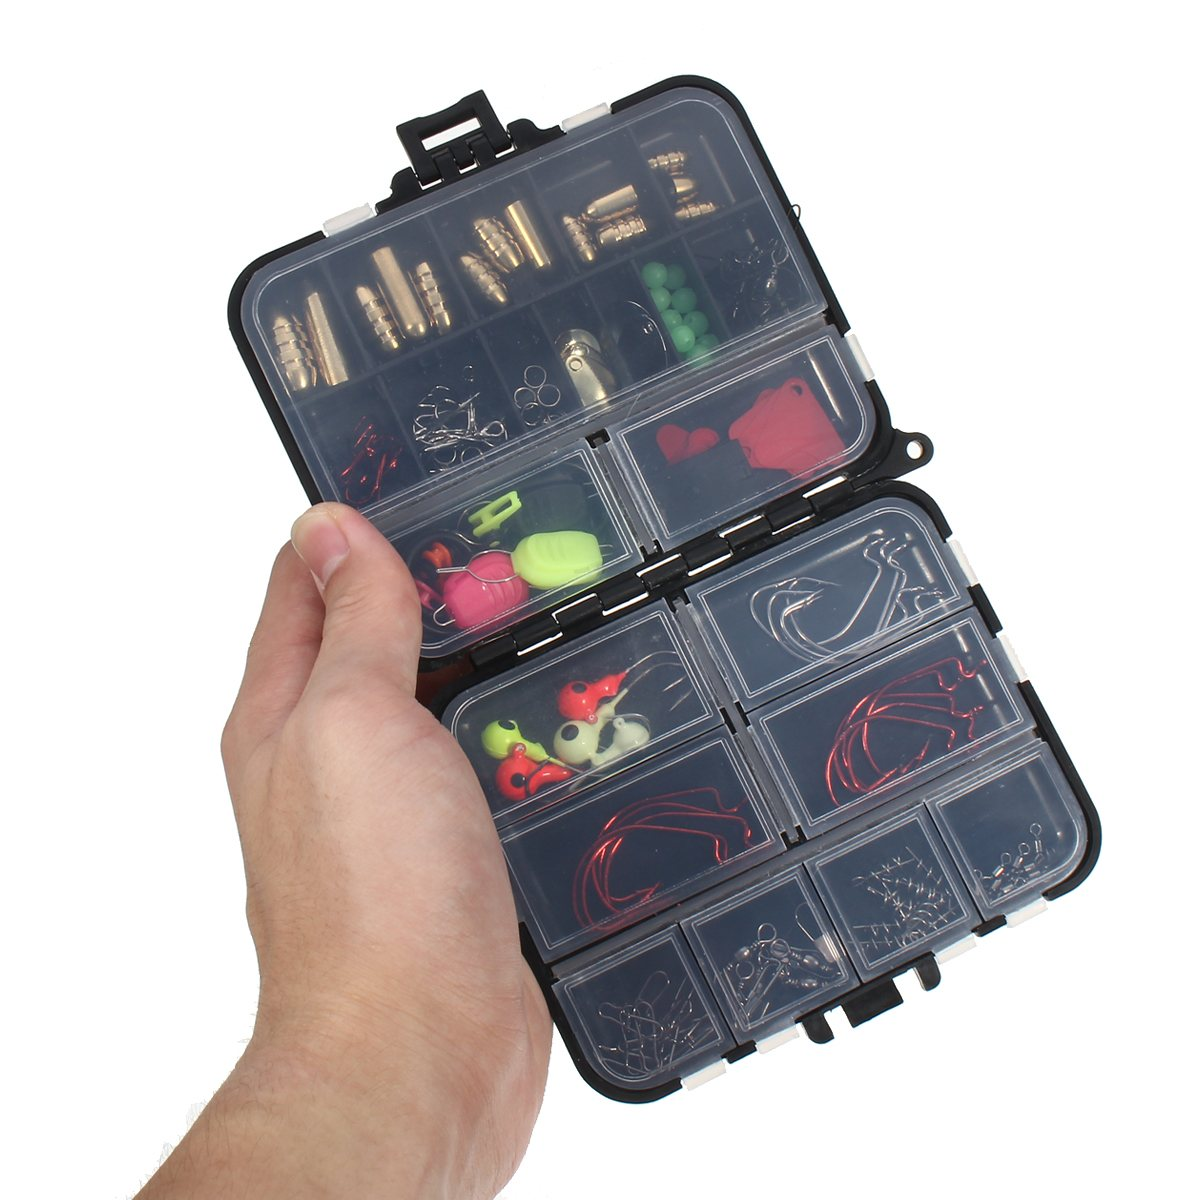 Bobing 128Pcs Fishing Accessories Kits In Tackle Box Jig Heads Fishing <font><b>Hooks</b></font> Connector Spring Ring Line Holder Lure Keeper Tools